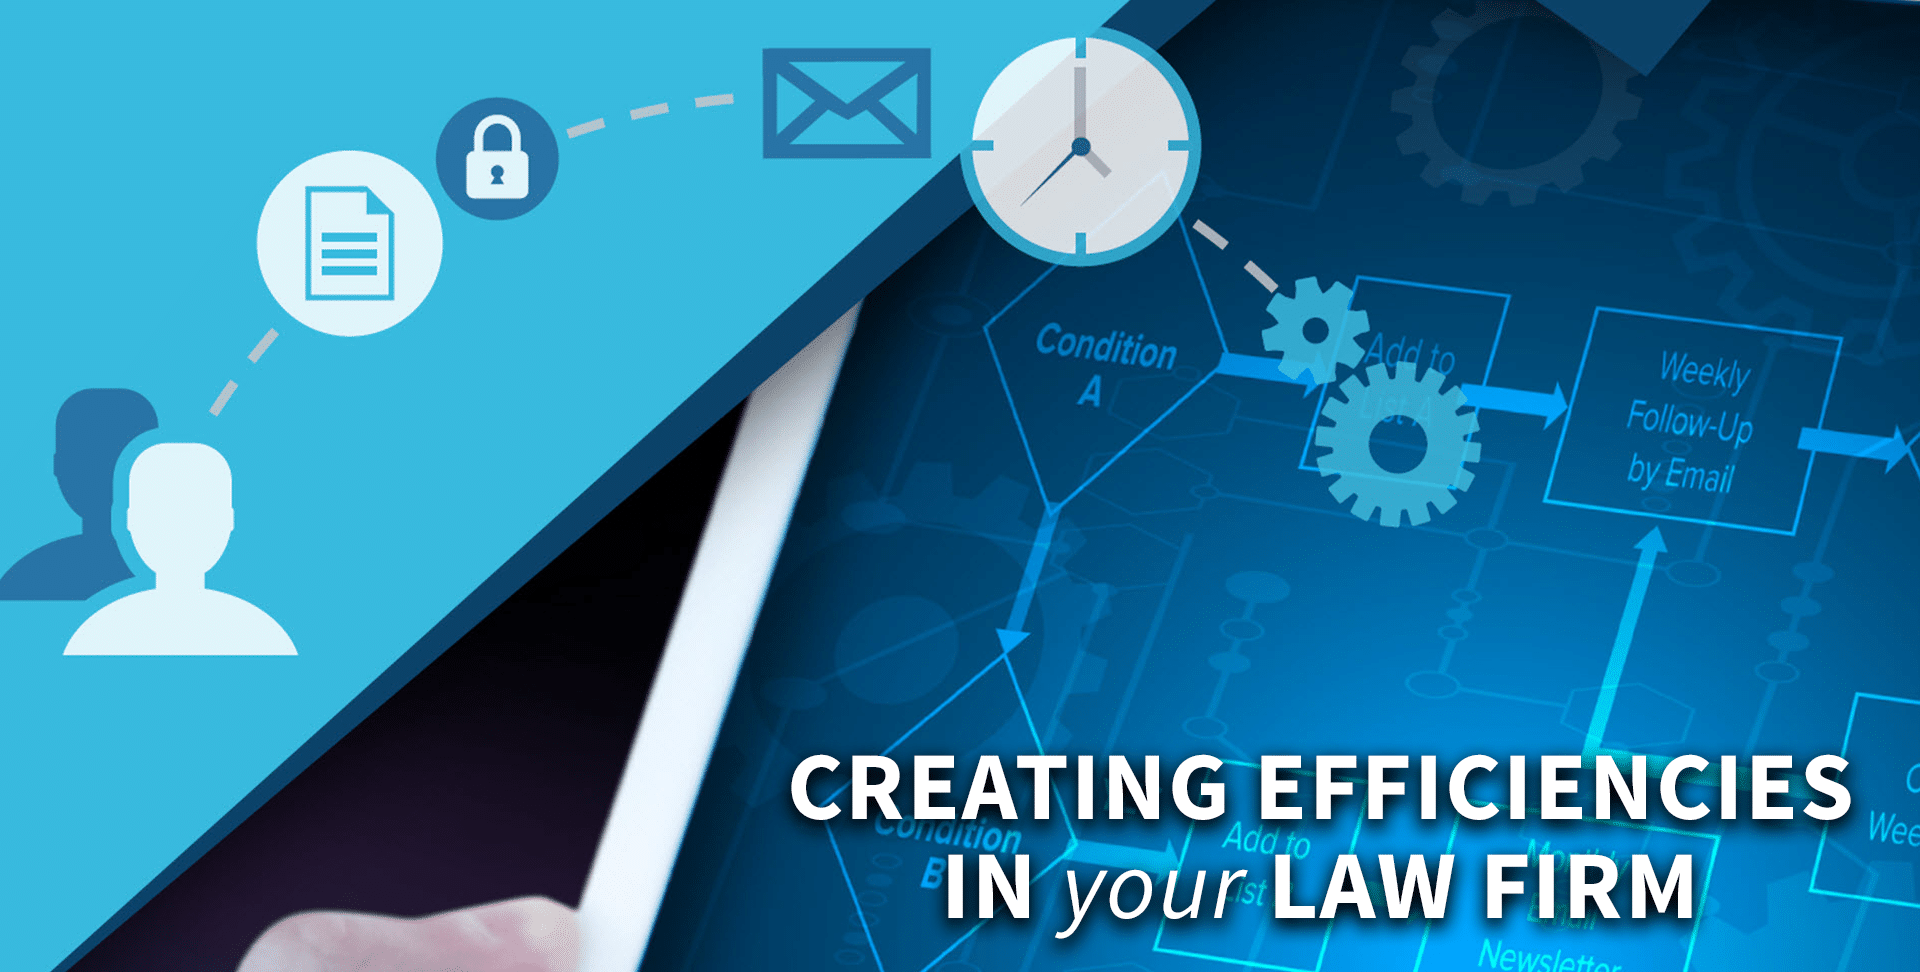 Creating Efficiencies Using Law Firm Marketing Automation